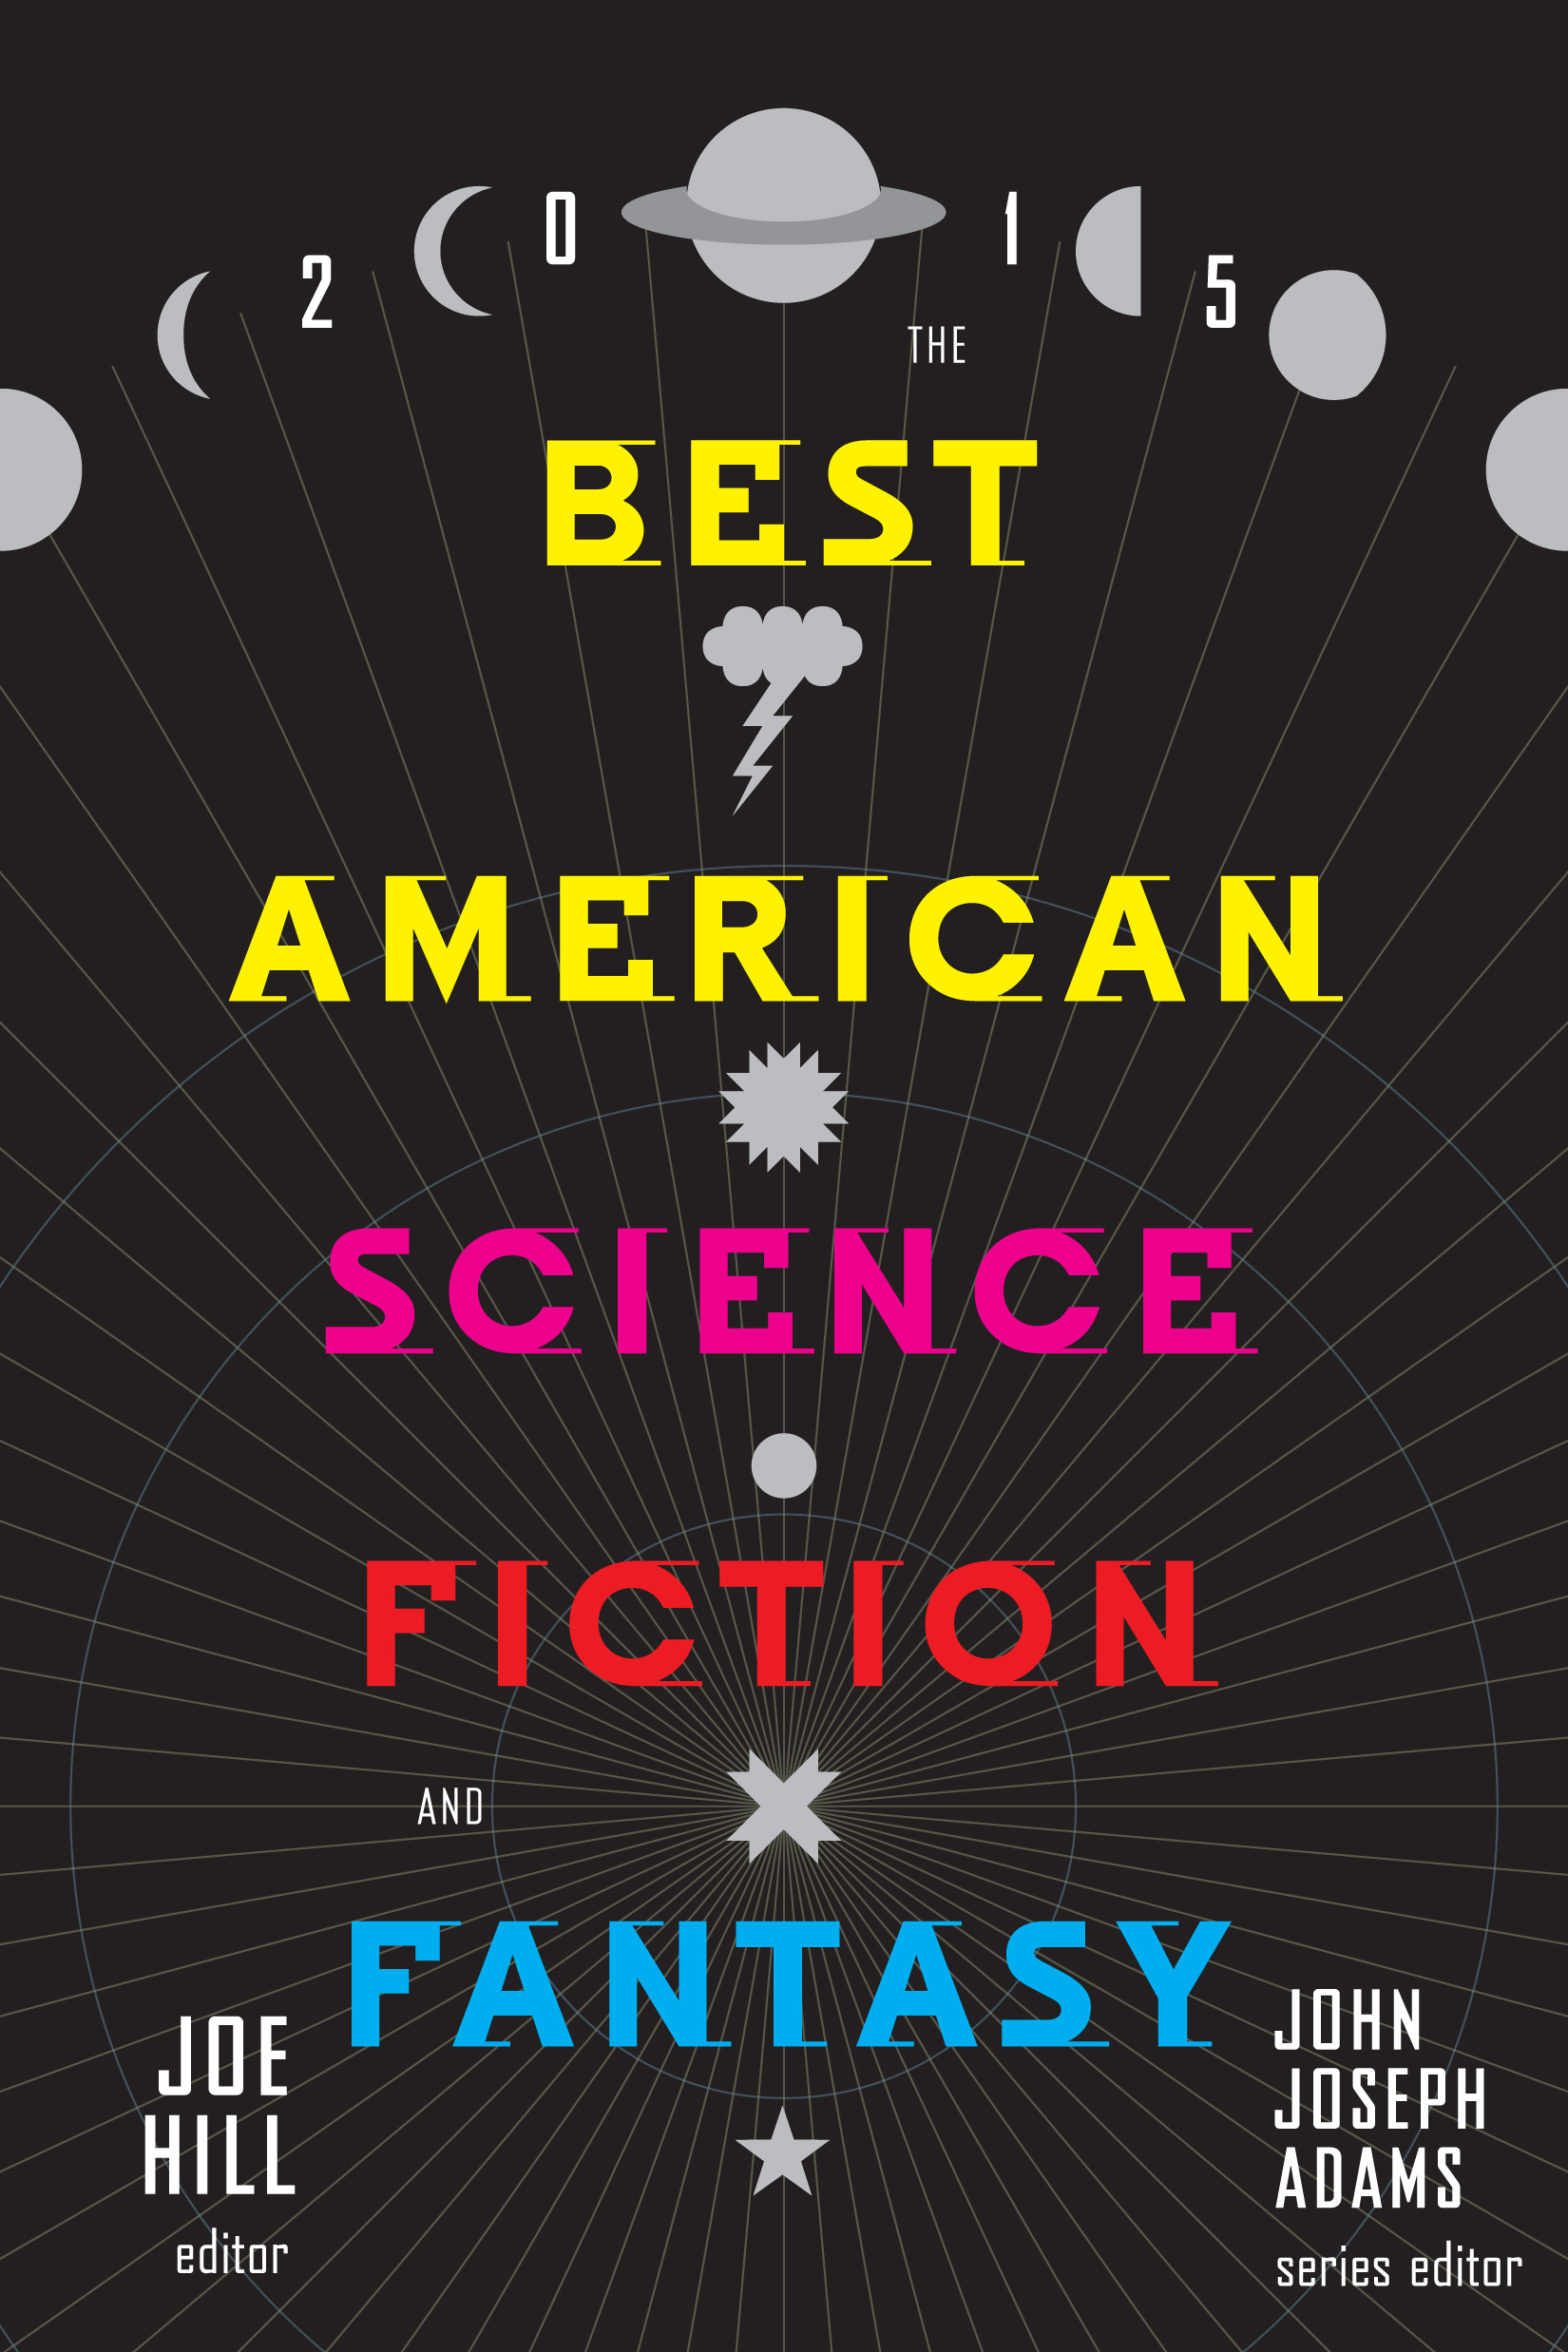 The Best American Science Fiction and Fantasy 2015 by Joe Hill